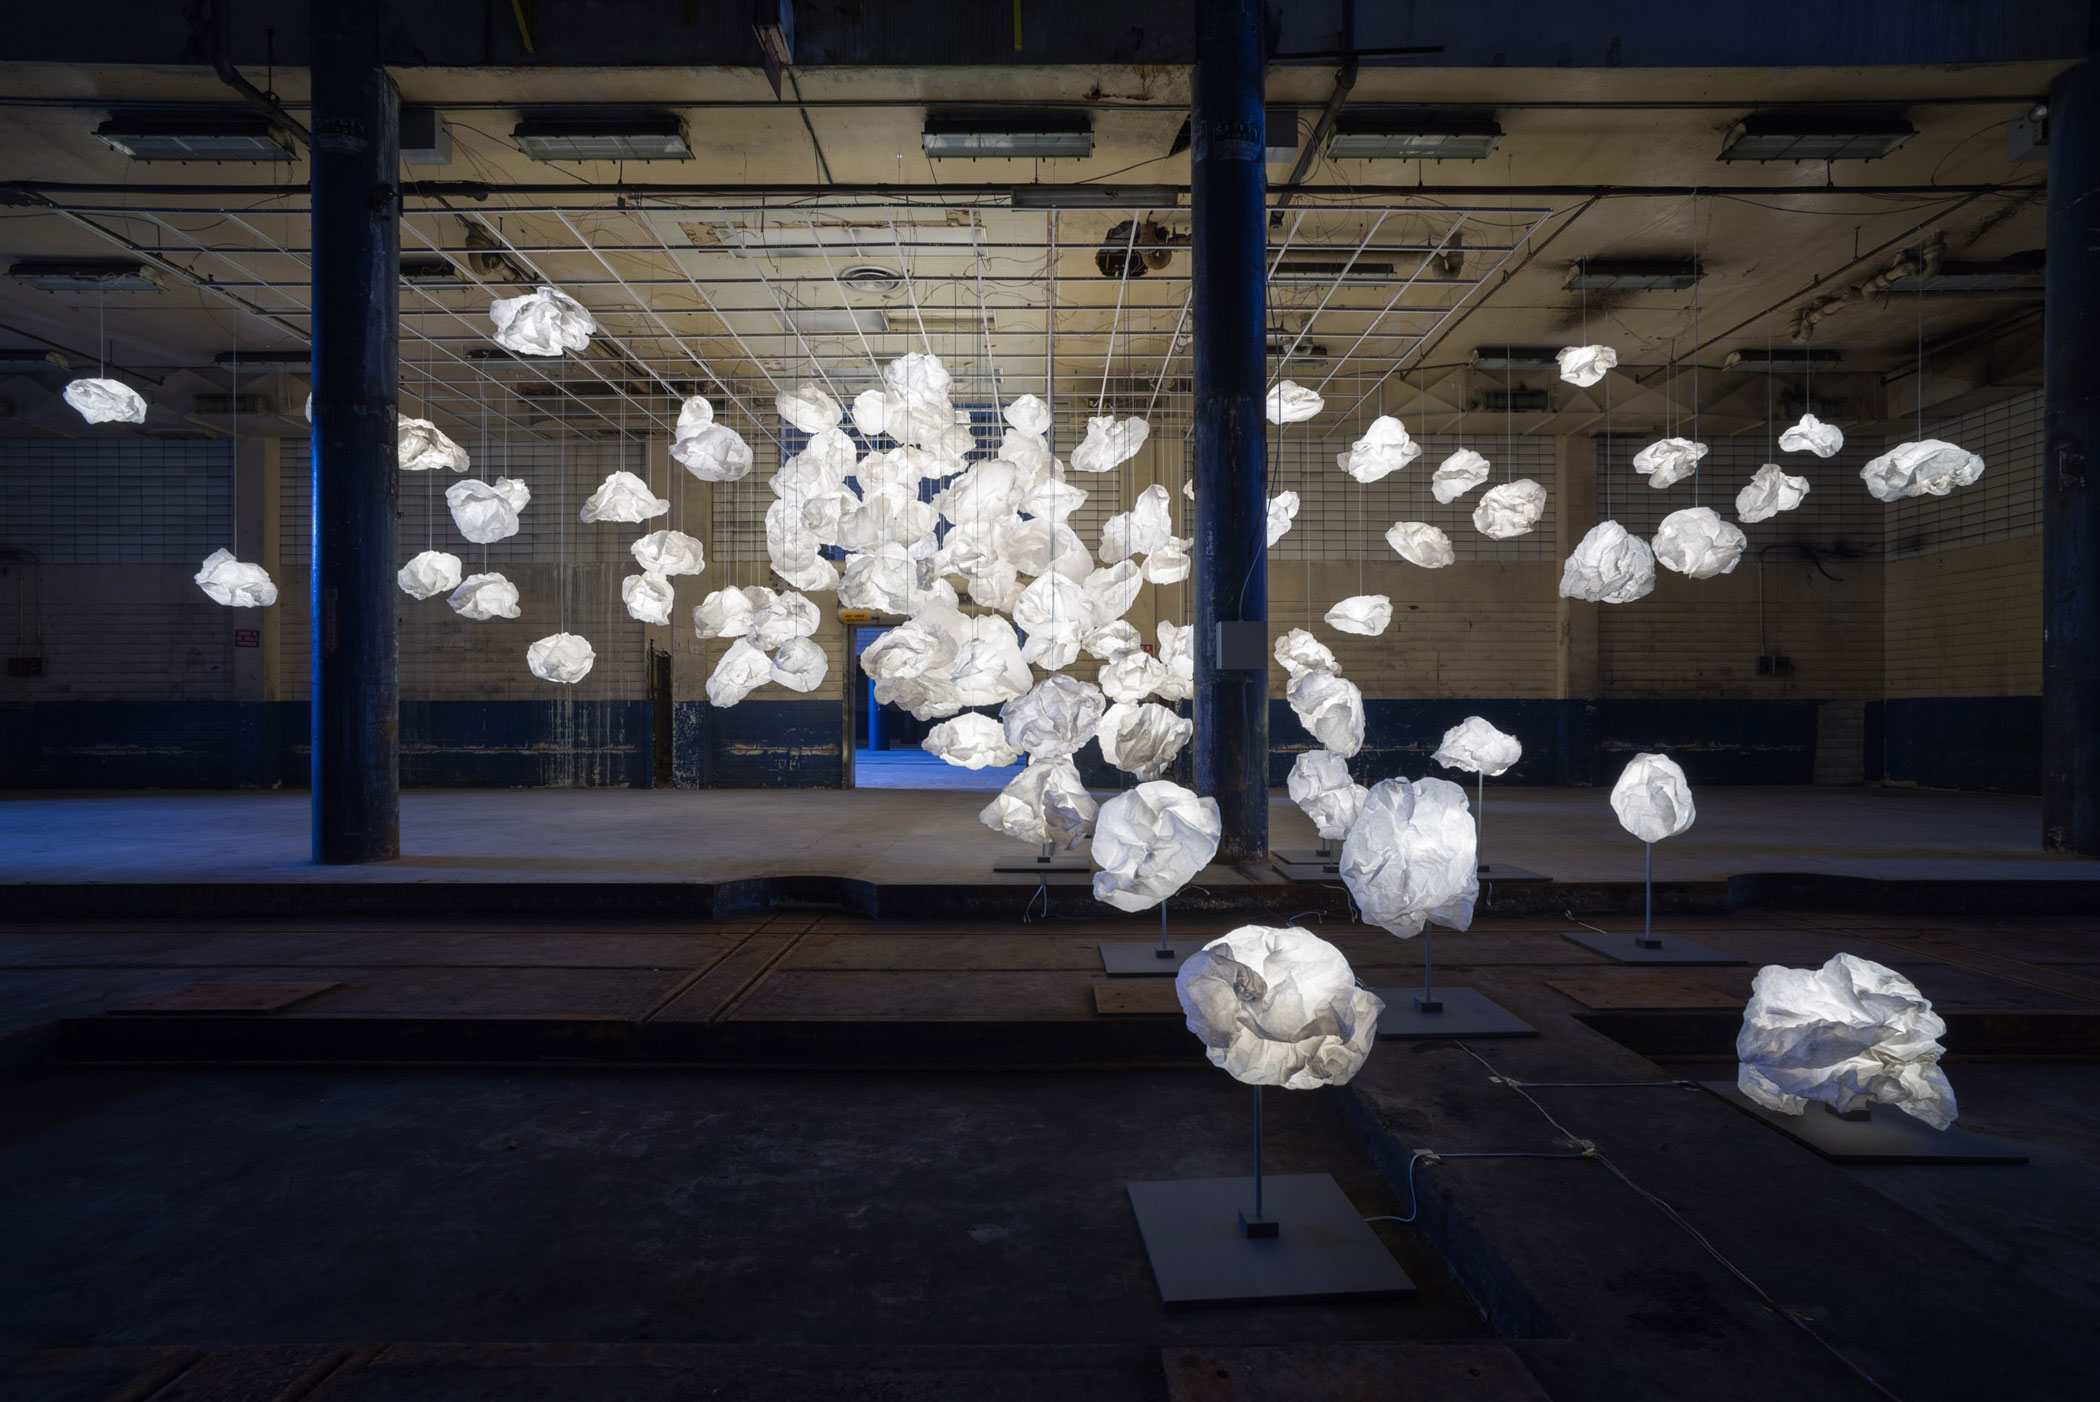 ball shade prd d departments bq b melito white diy at ceiling q cloud light colours feather